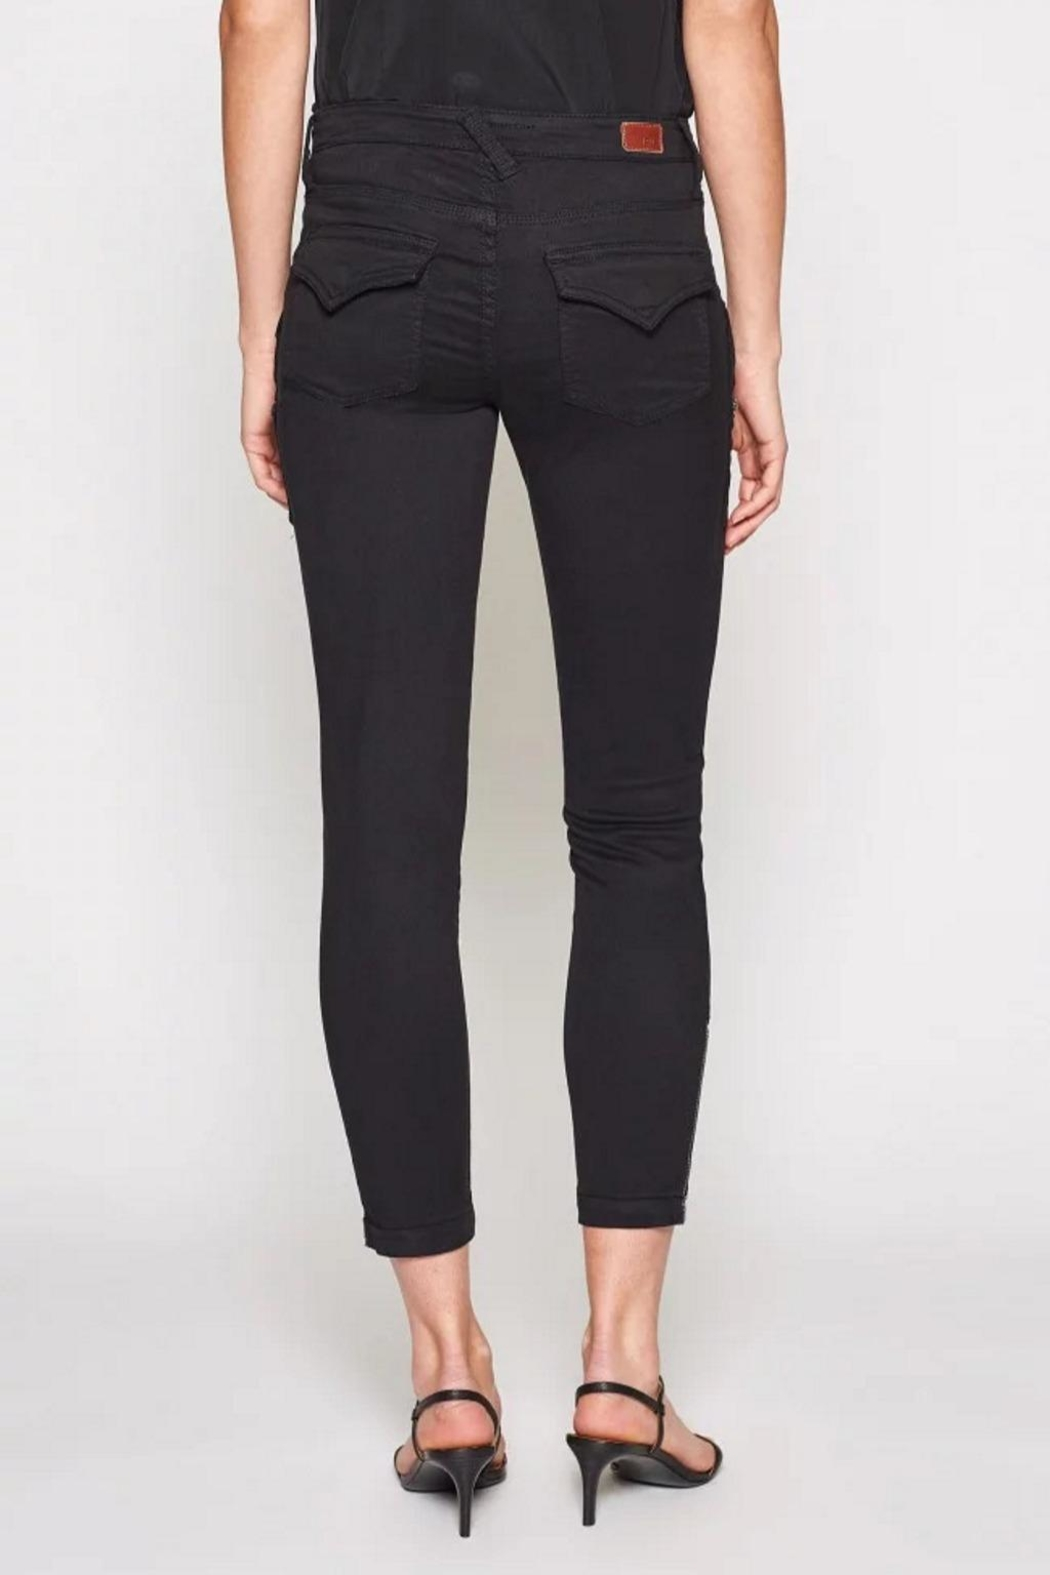 Joie Park Skinny Pants - Back Cropped Image